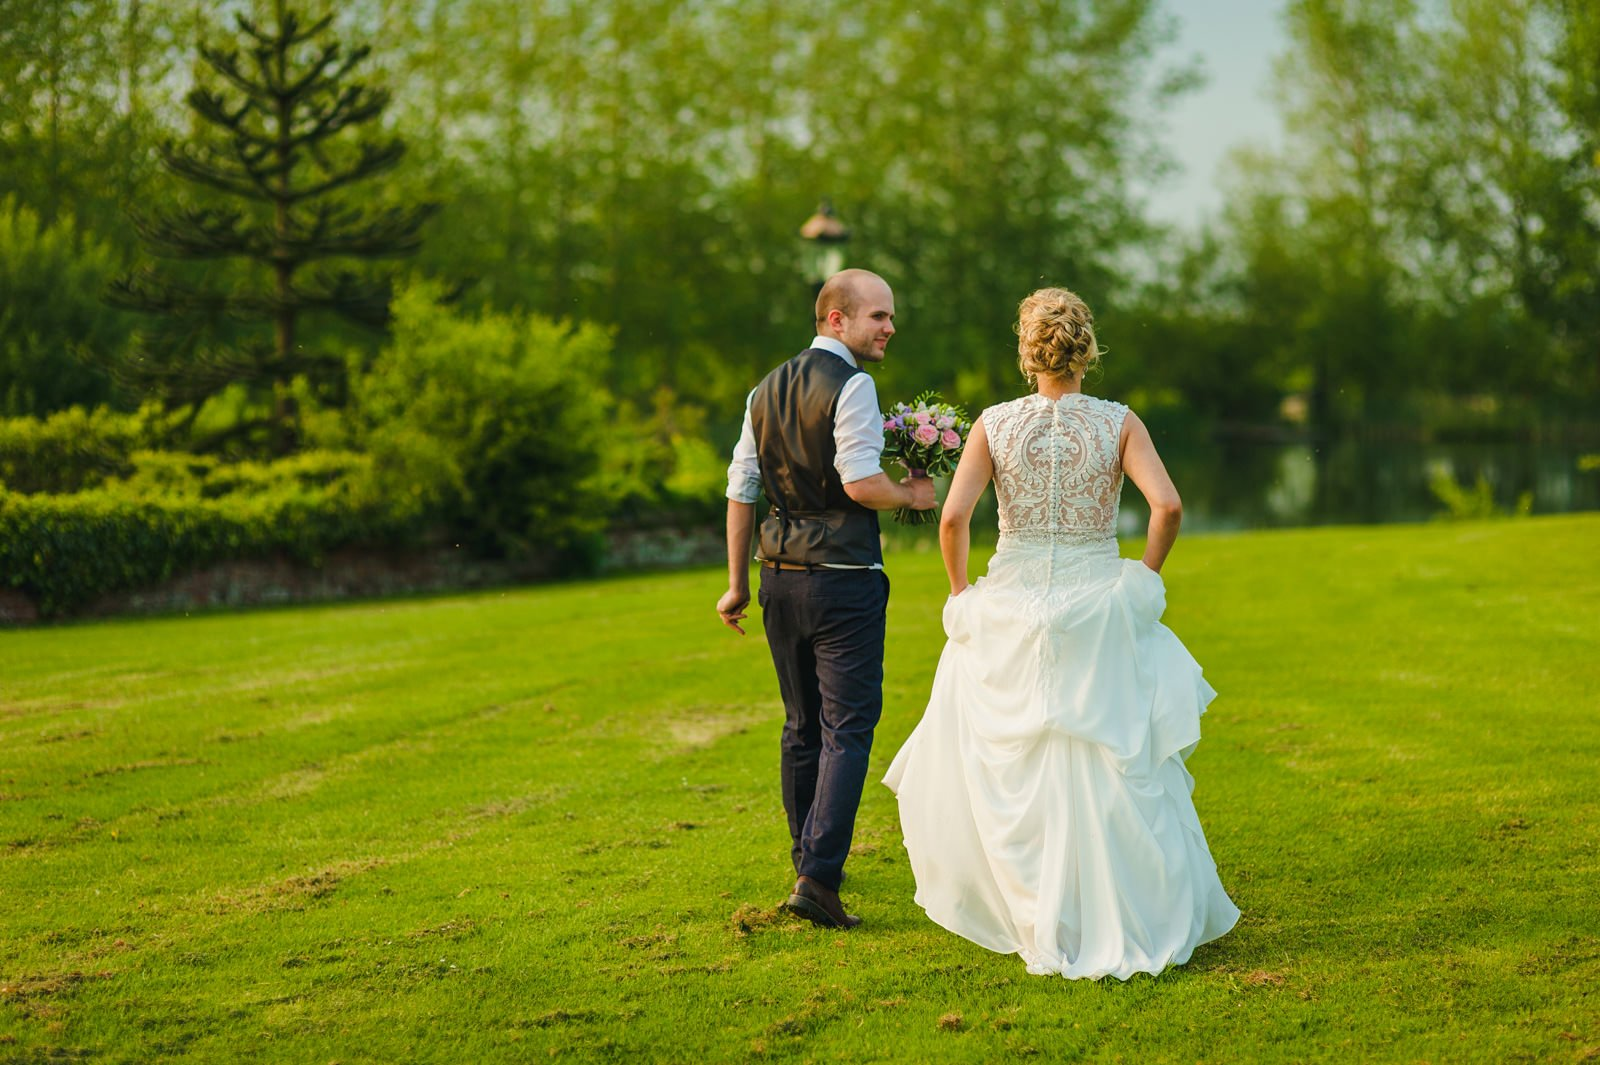 millers of netley wedding 100 - Millers Of Netley wedding, Dorrington, Shrewsbury | Emma + Ben